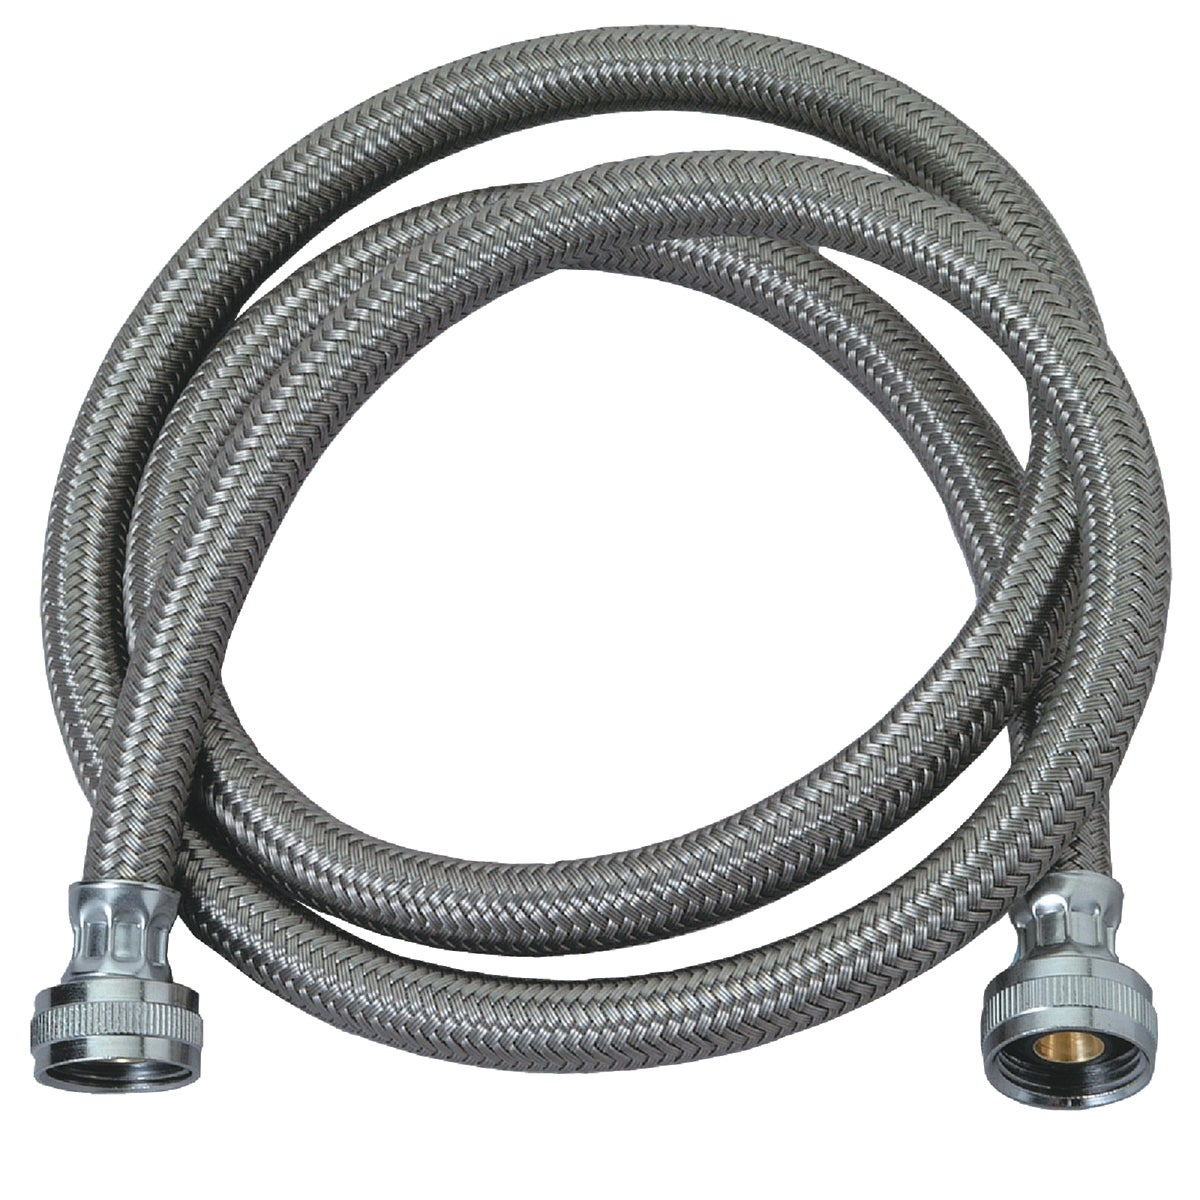 4' WASH HOSE - BL12-48WA P by Brass Craft